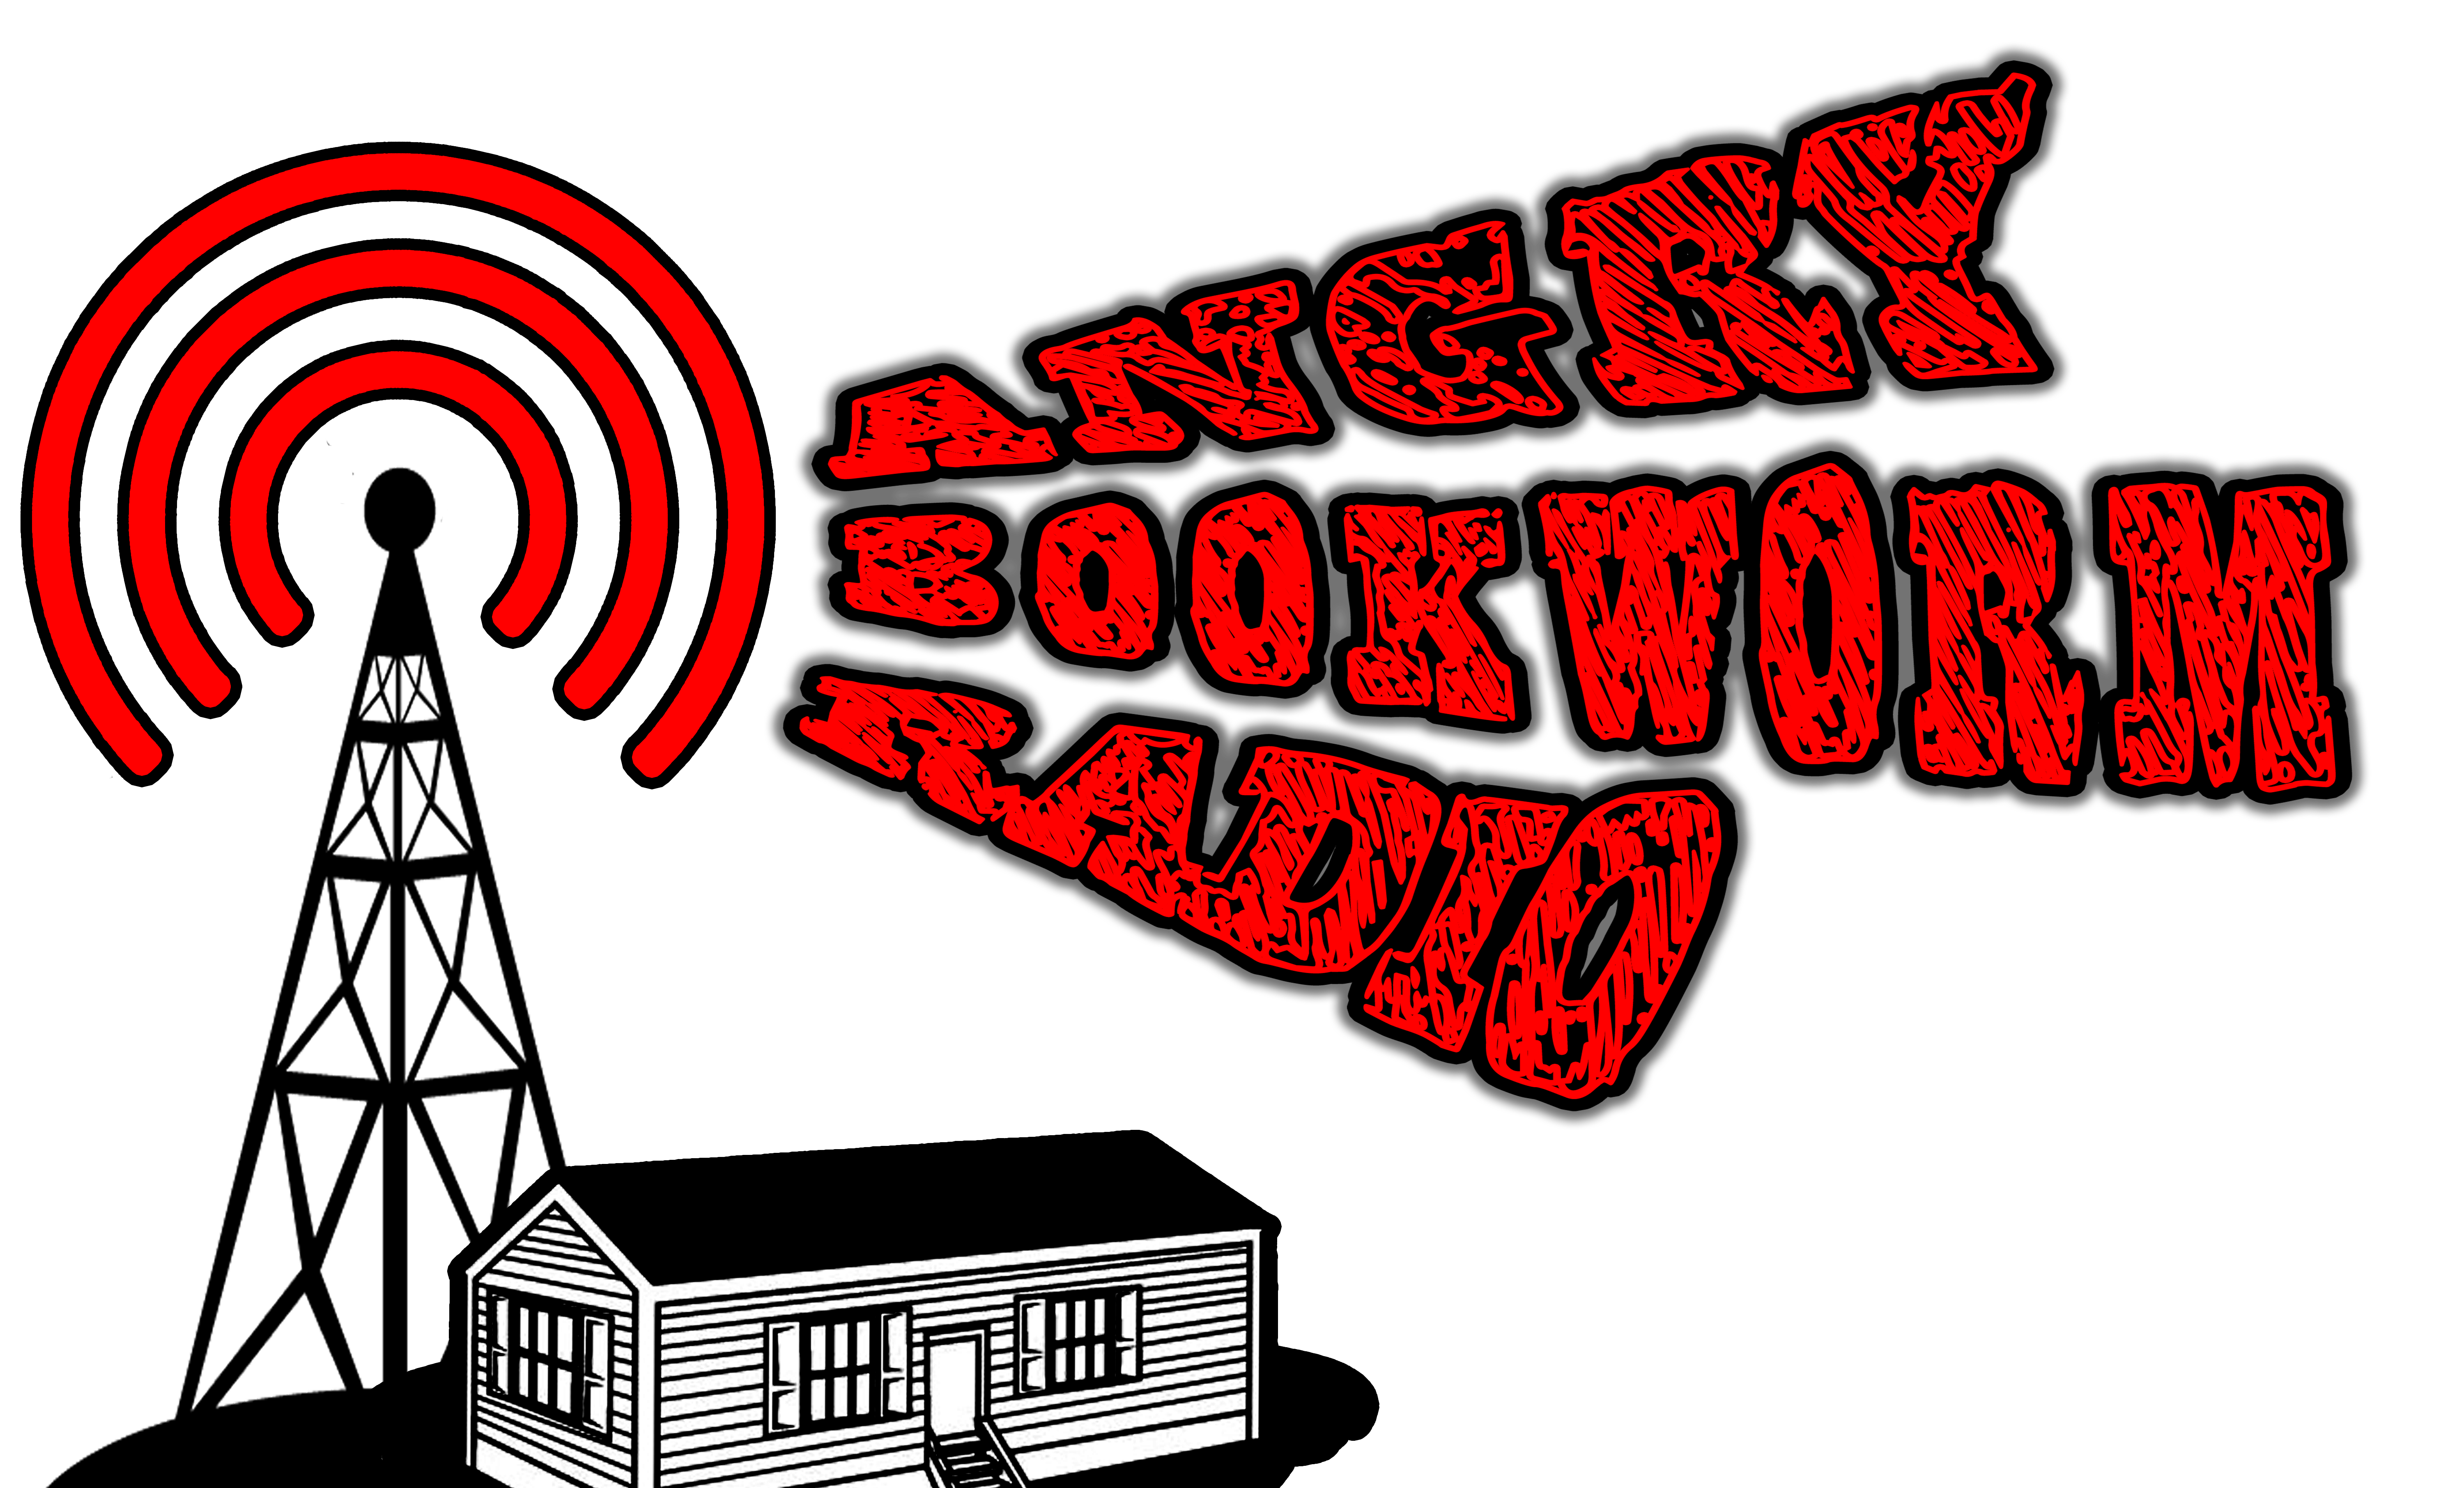 Angry Bookworm Radio  Home to the Angry Bookworm Radio Podcast Network